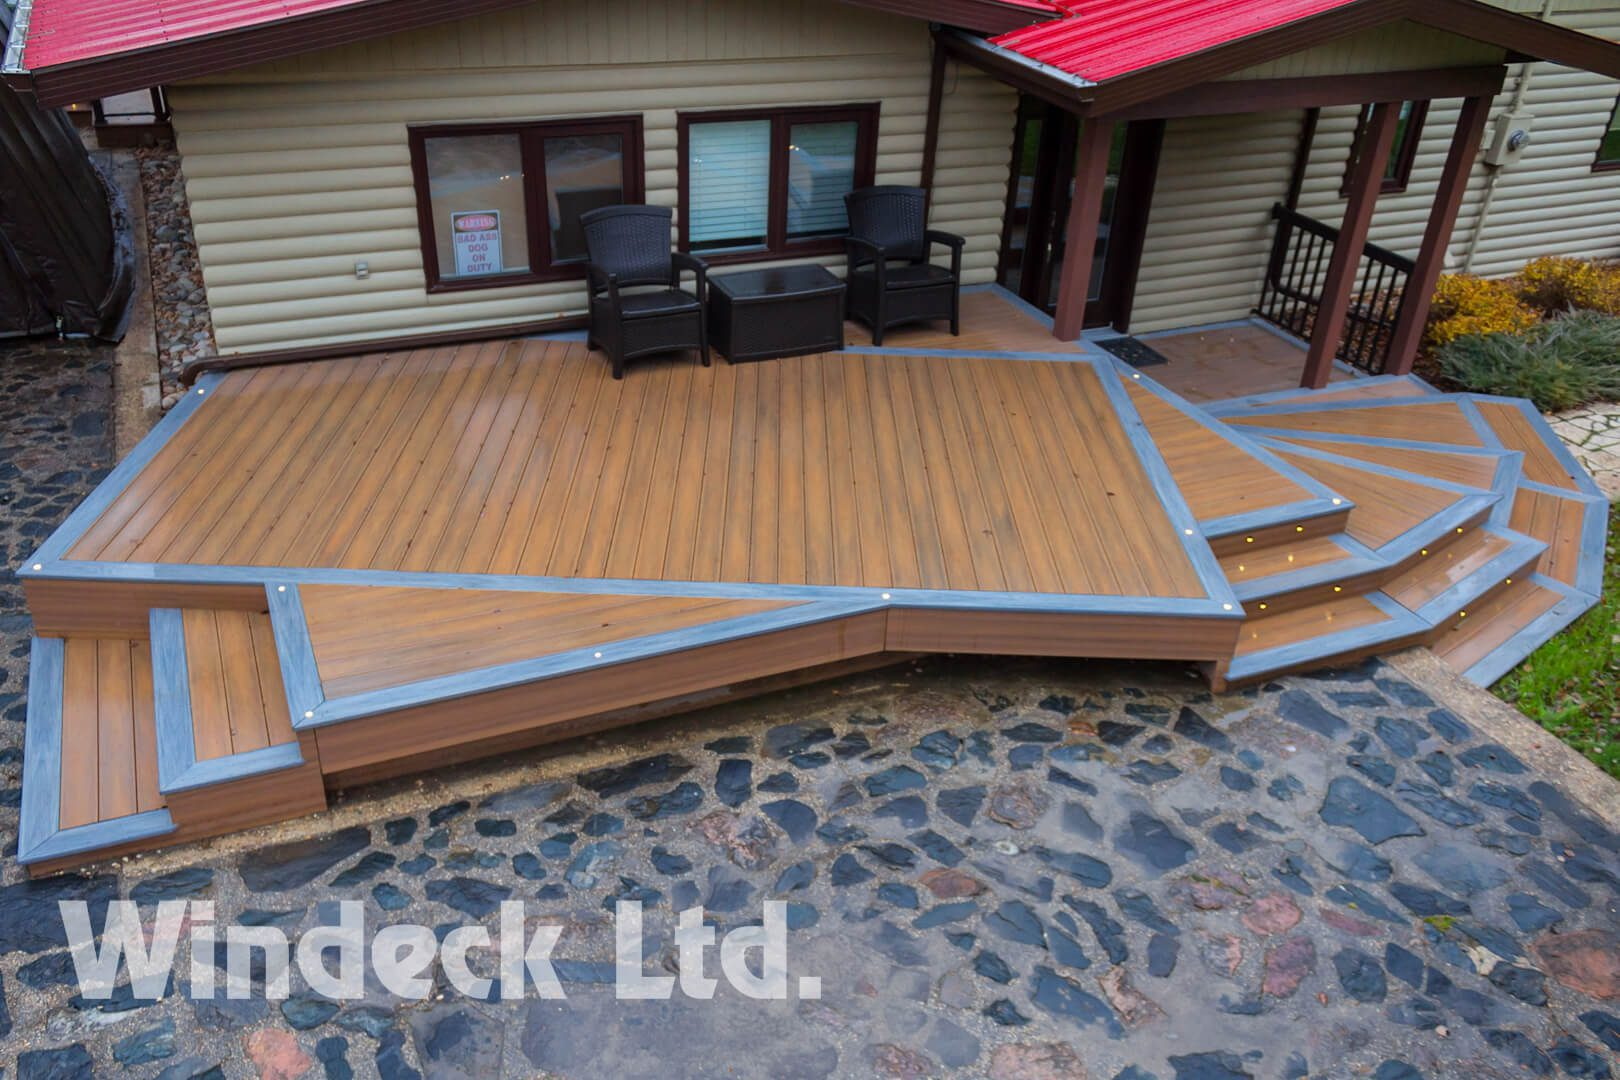 Deck Board Mania - Windeck Ltd. - Deck Builder Winnipeg, Manitoba